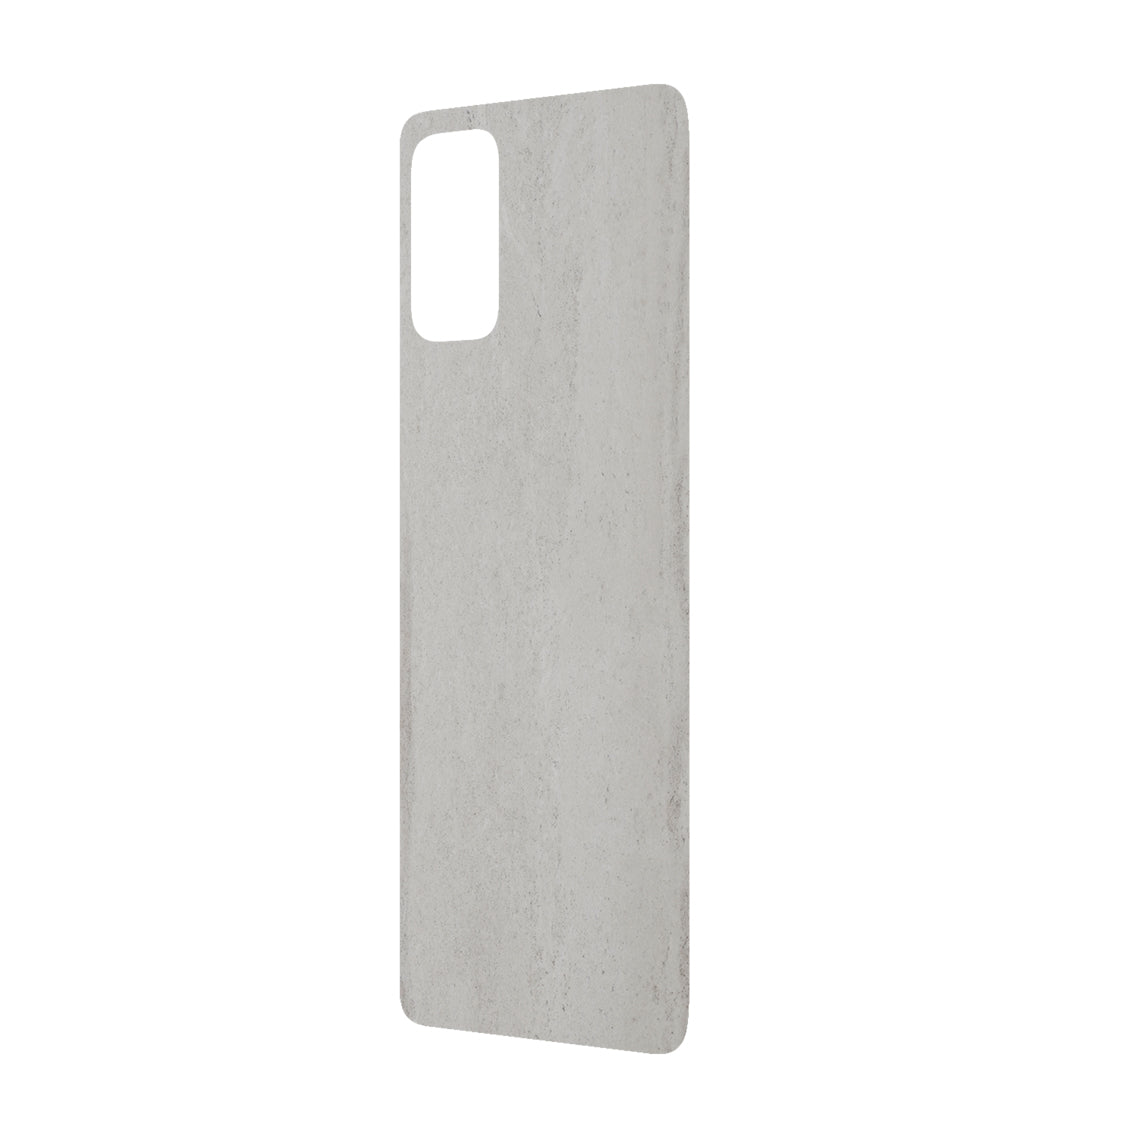 RhinoShield Impact Skin For Samsung S20 Plus - Concrete - Macintosh Addict